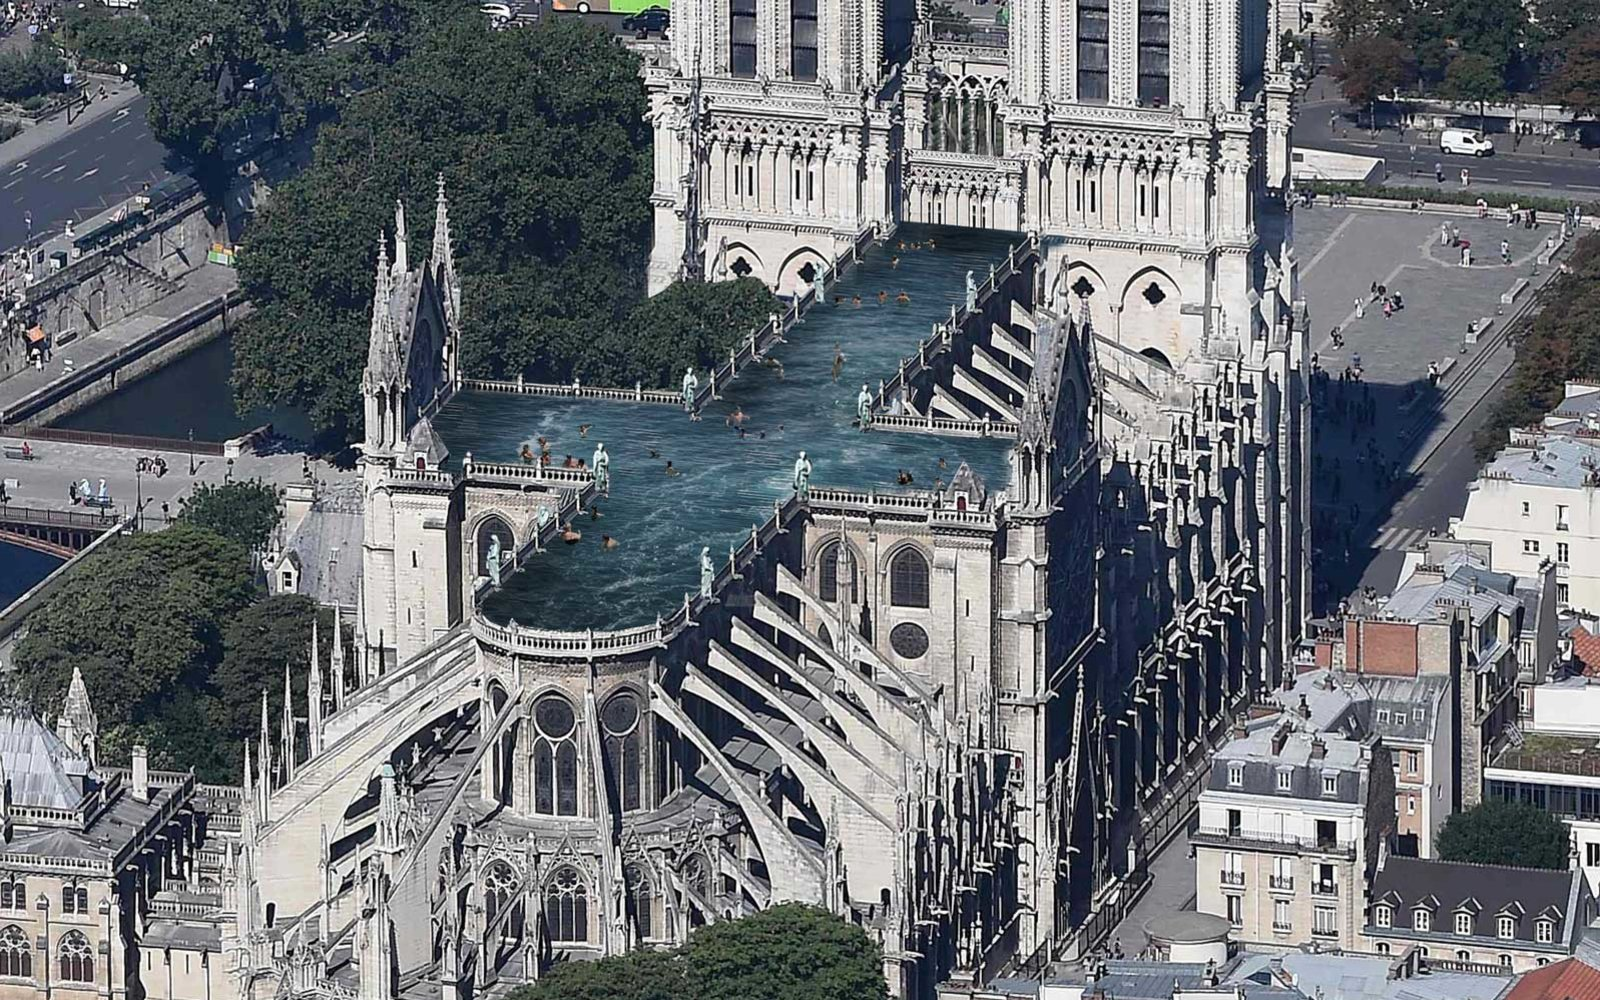 Design Firm Proposes a Cross-shaped Rooftop Pool on the Notre Dame Cathedral